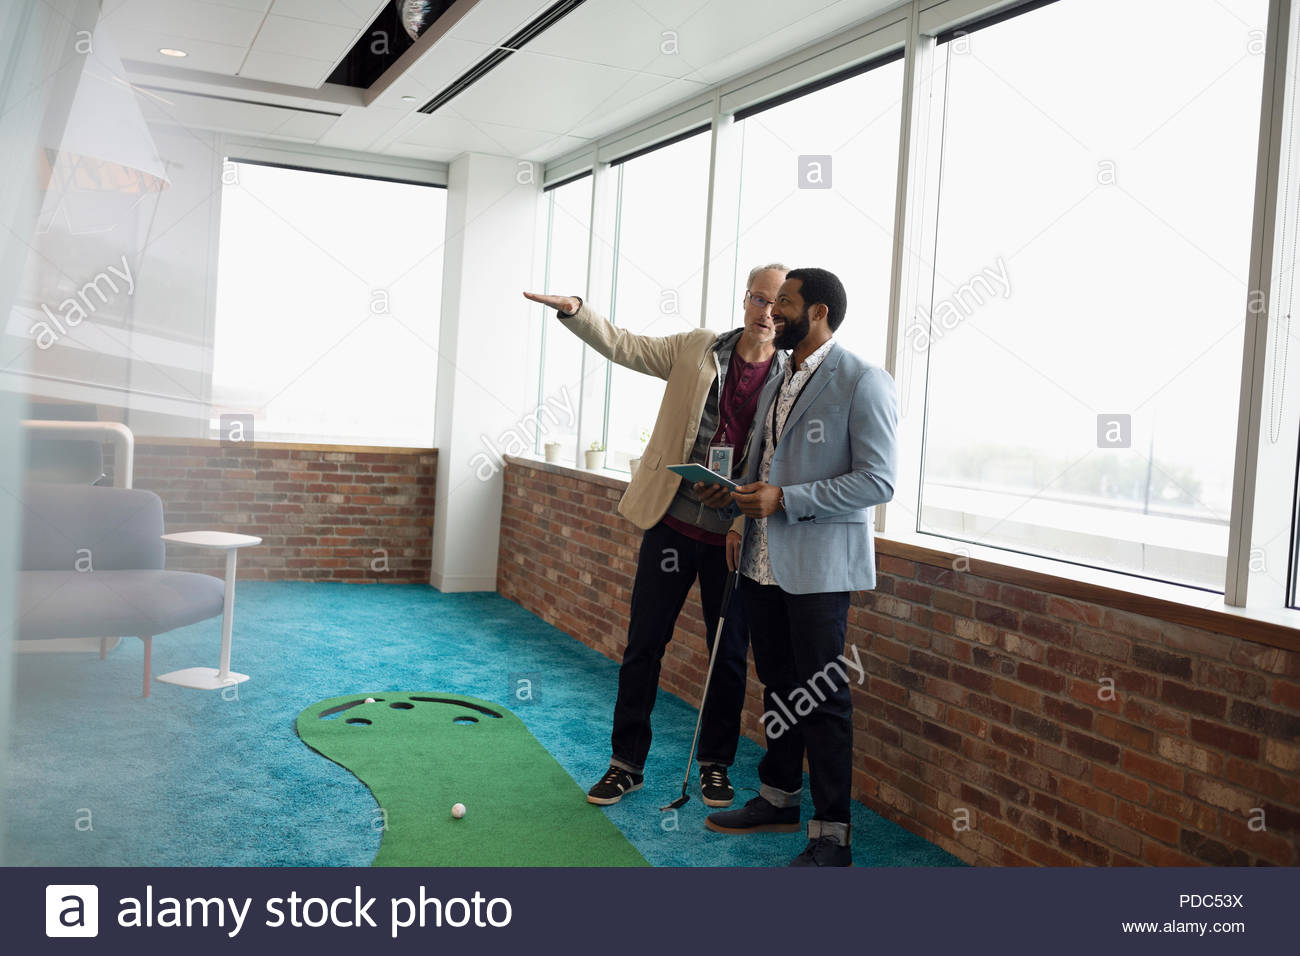 Creative businessman talking, practicing putting in office - Stock Image